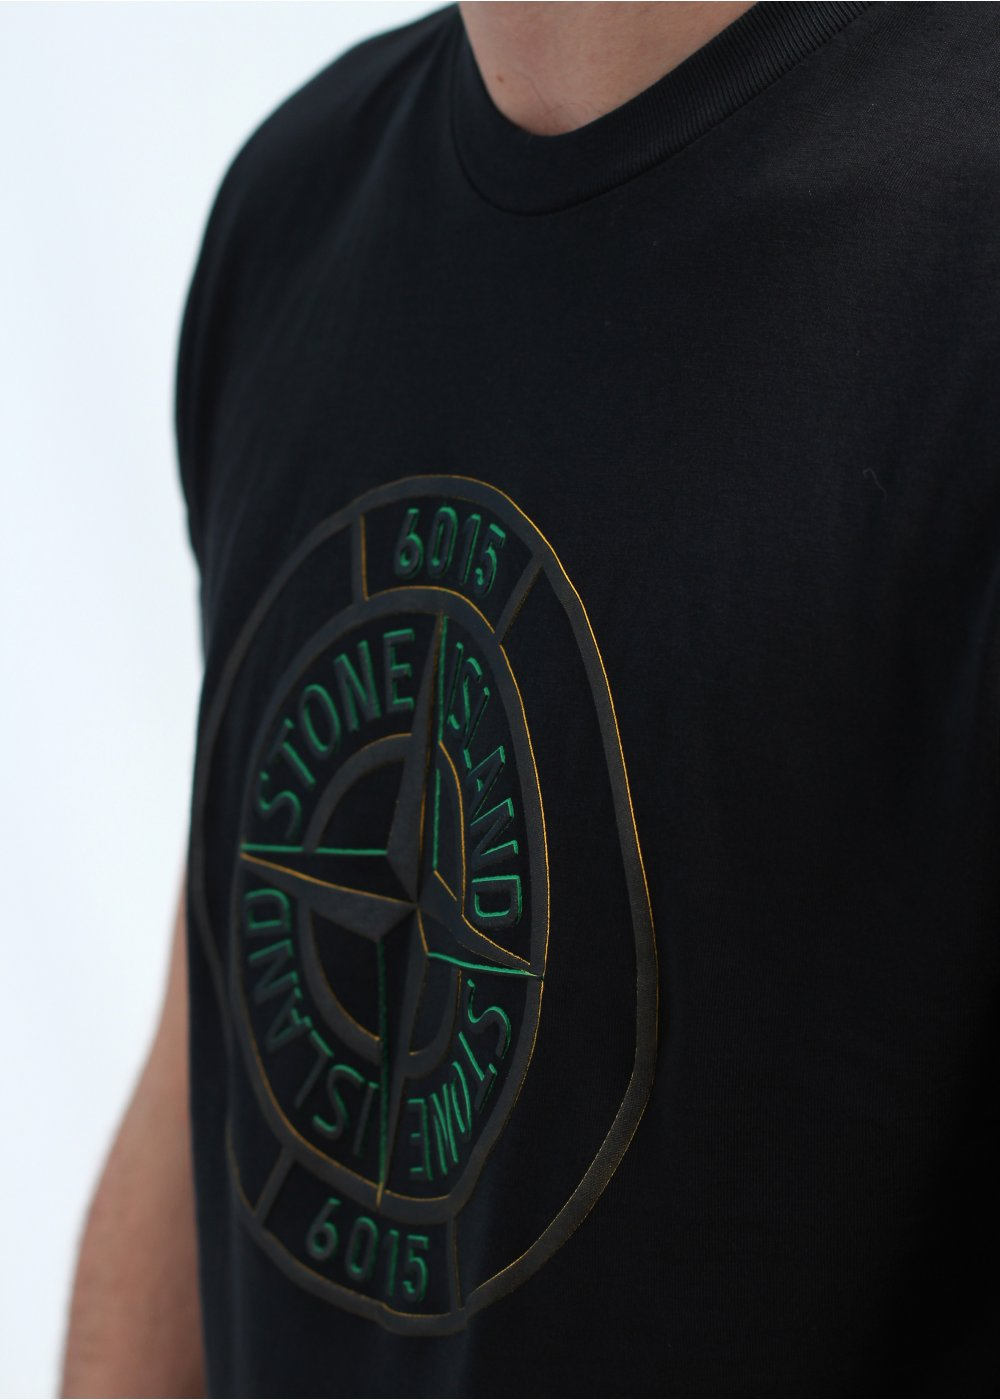 stone island logo t shirt black. Black Bedroom Furniture Sets. Home Design Ideas